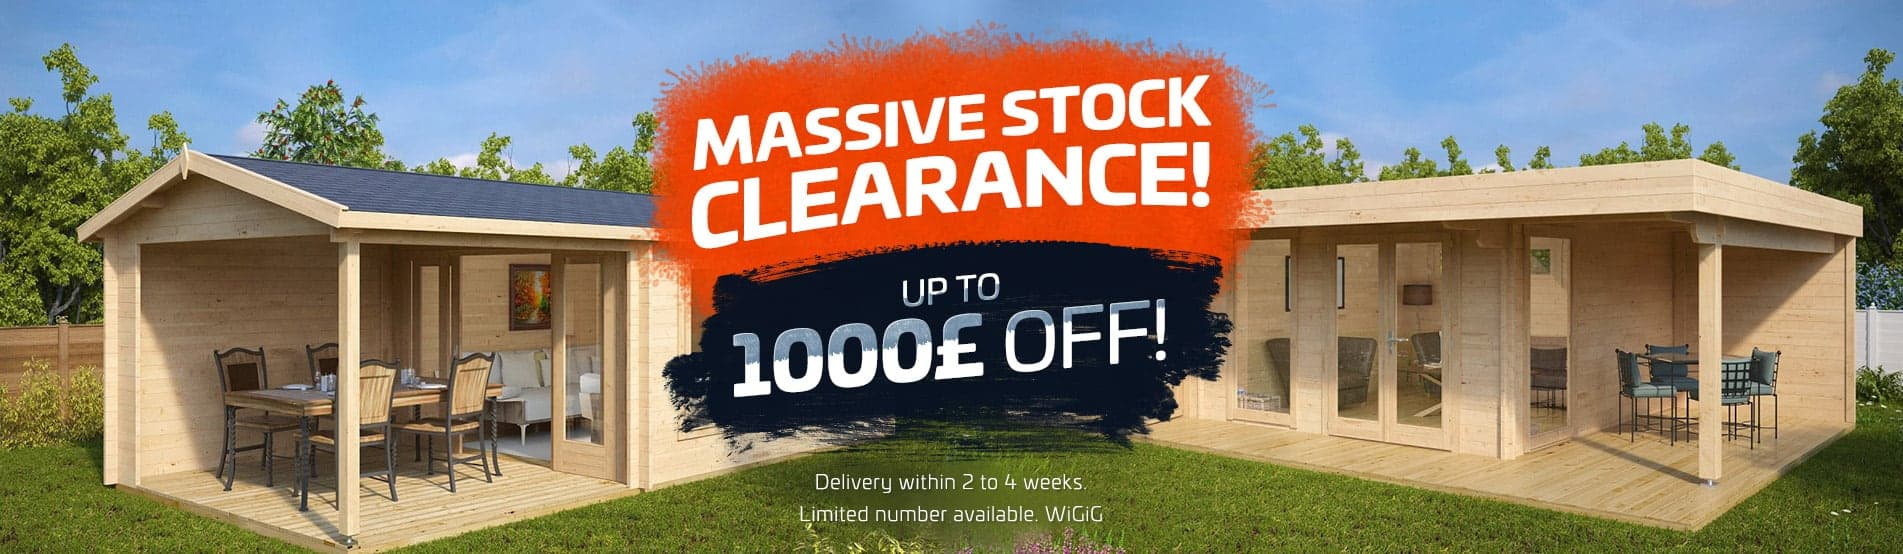 Massive Stock Clearance - up to 1000 pounds off!